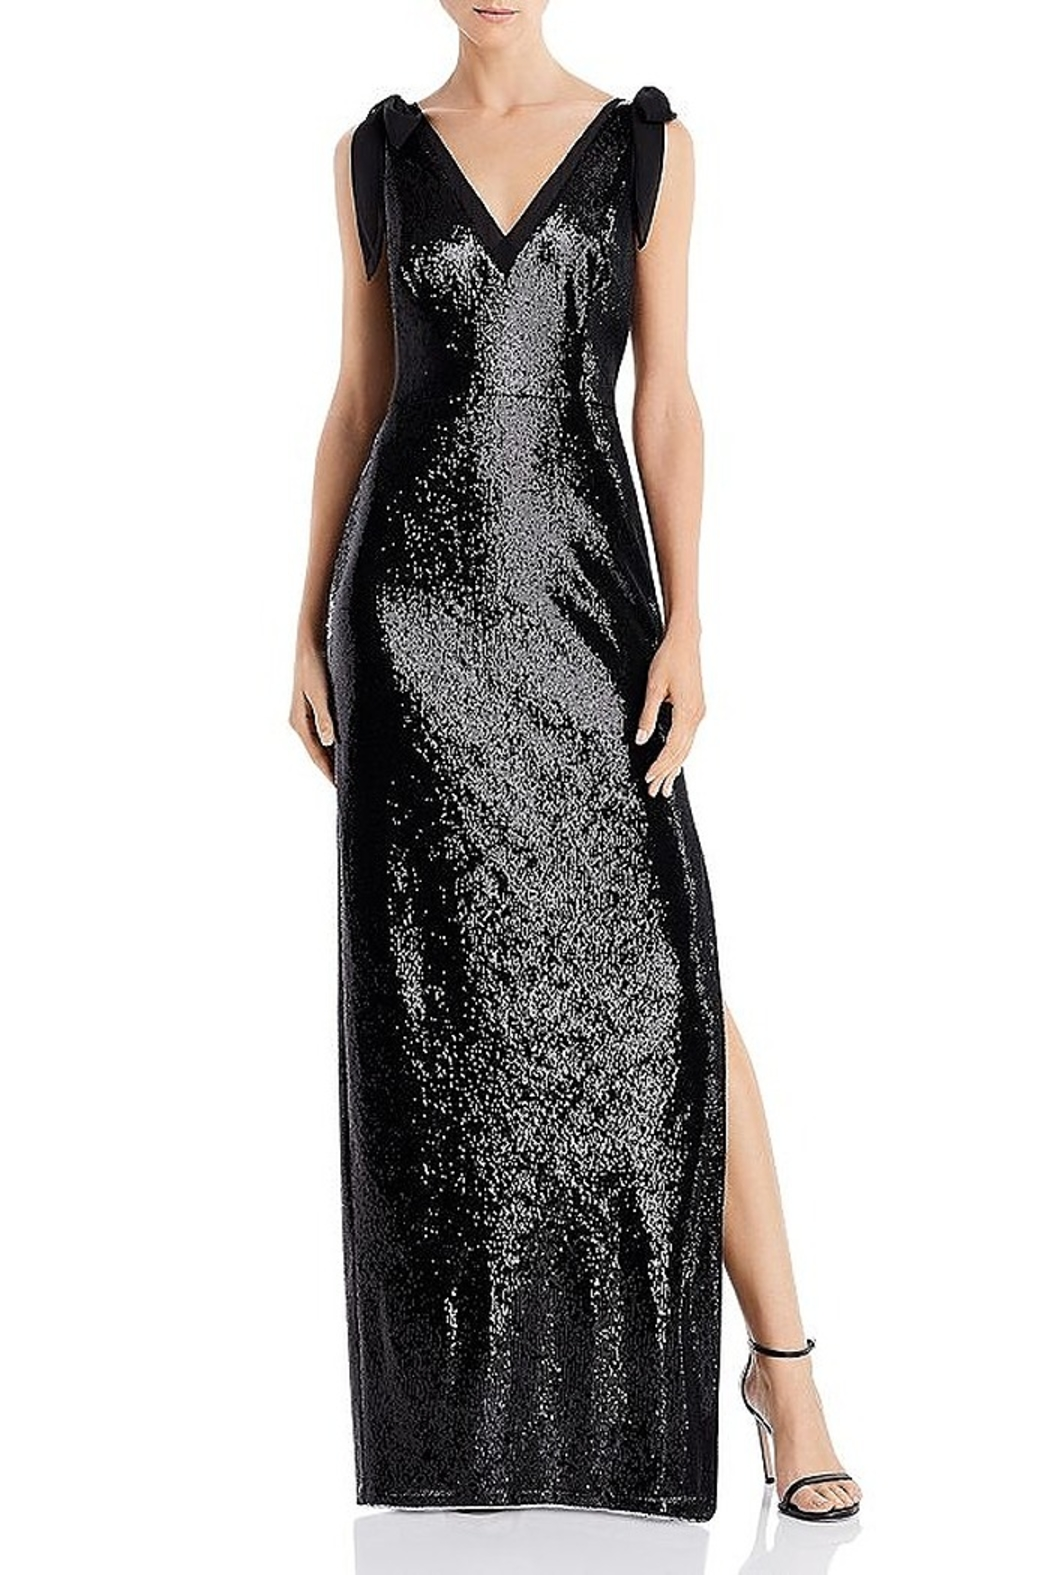 Aidan Mattox Sequin V-Neck Gown With Bow Shoulders - Main Image